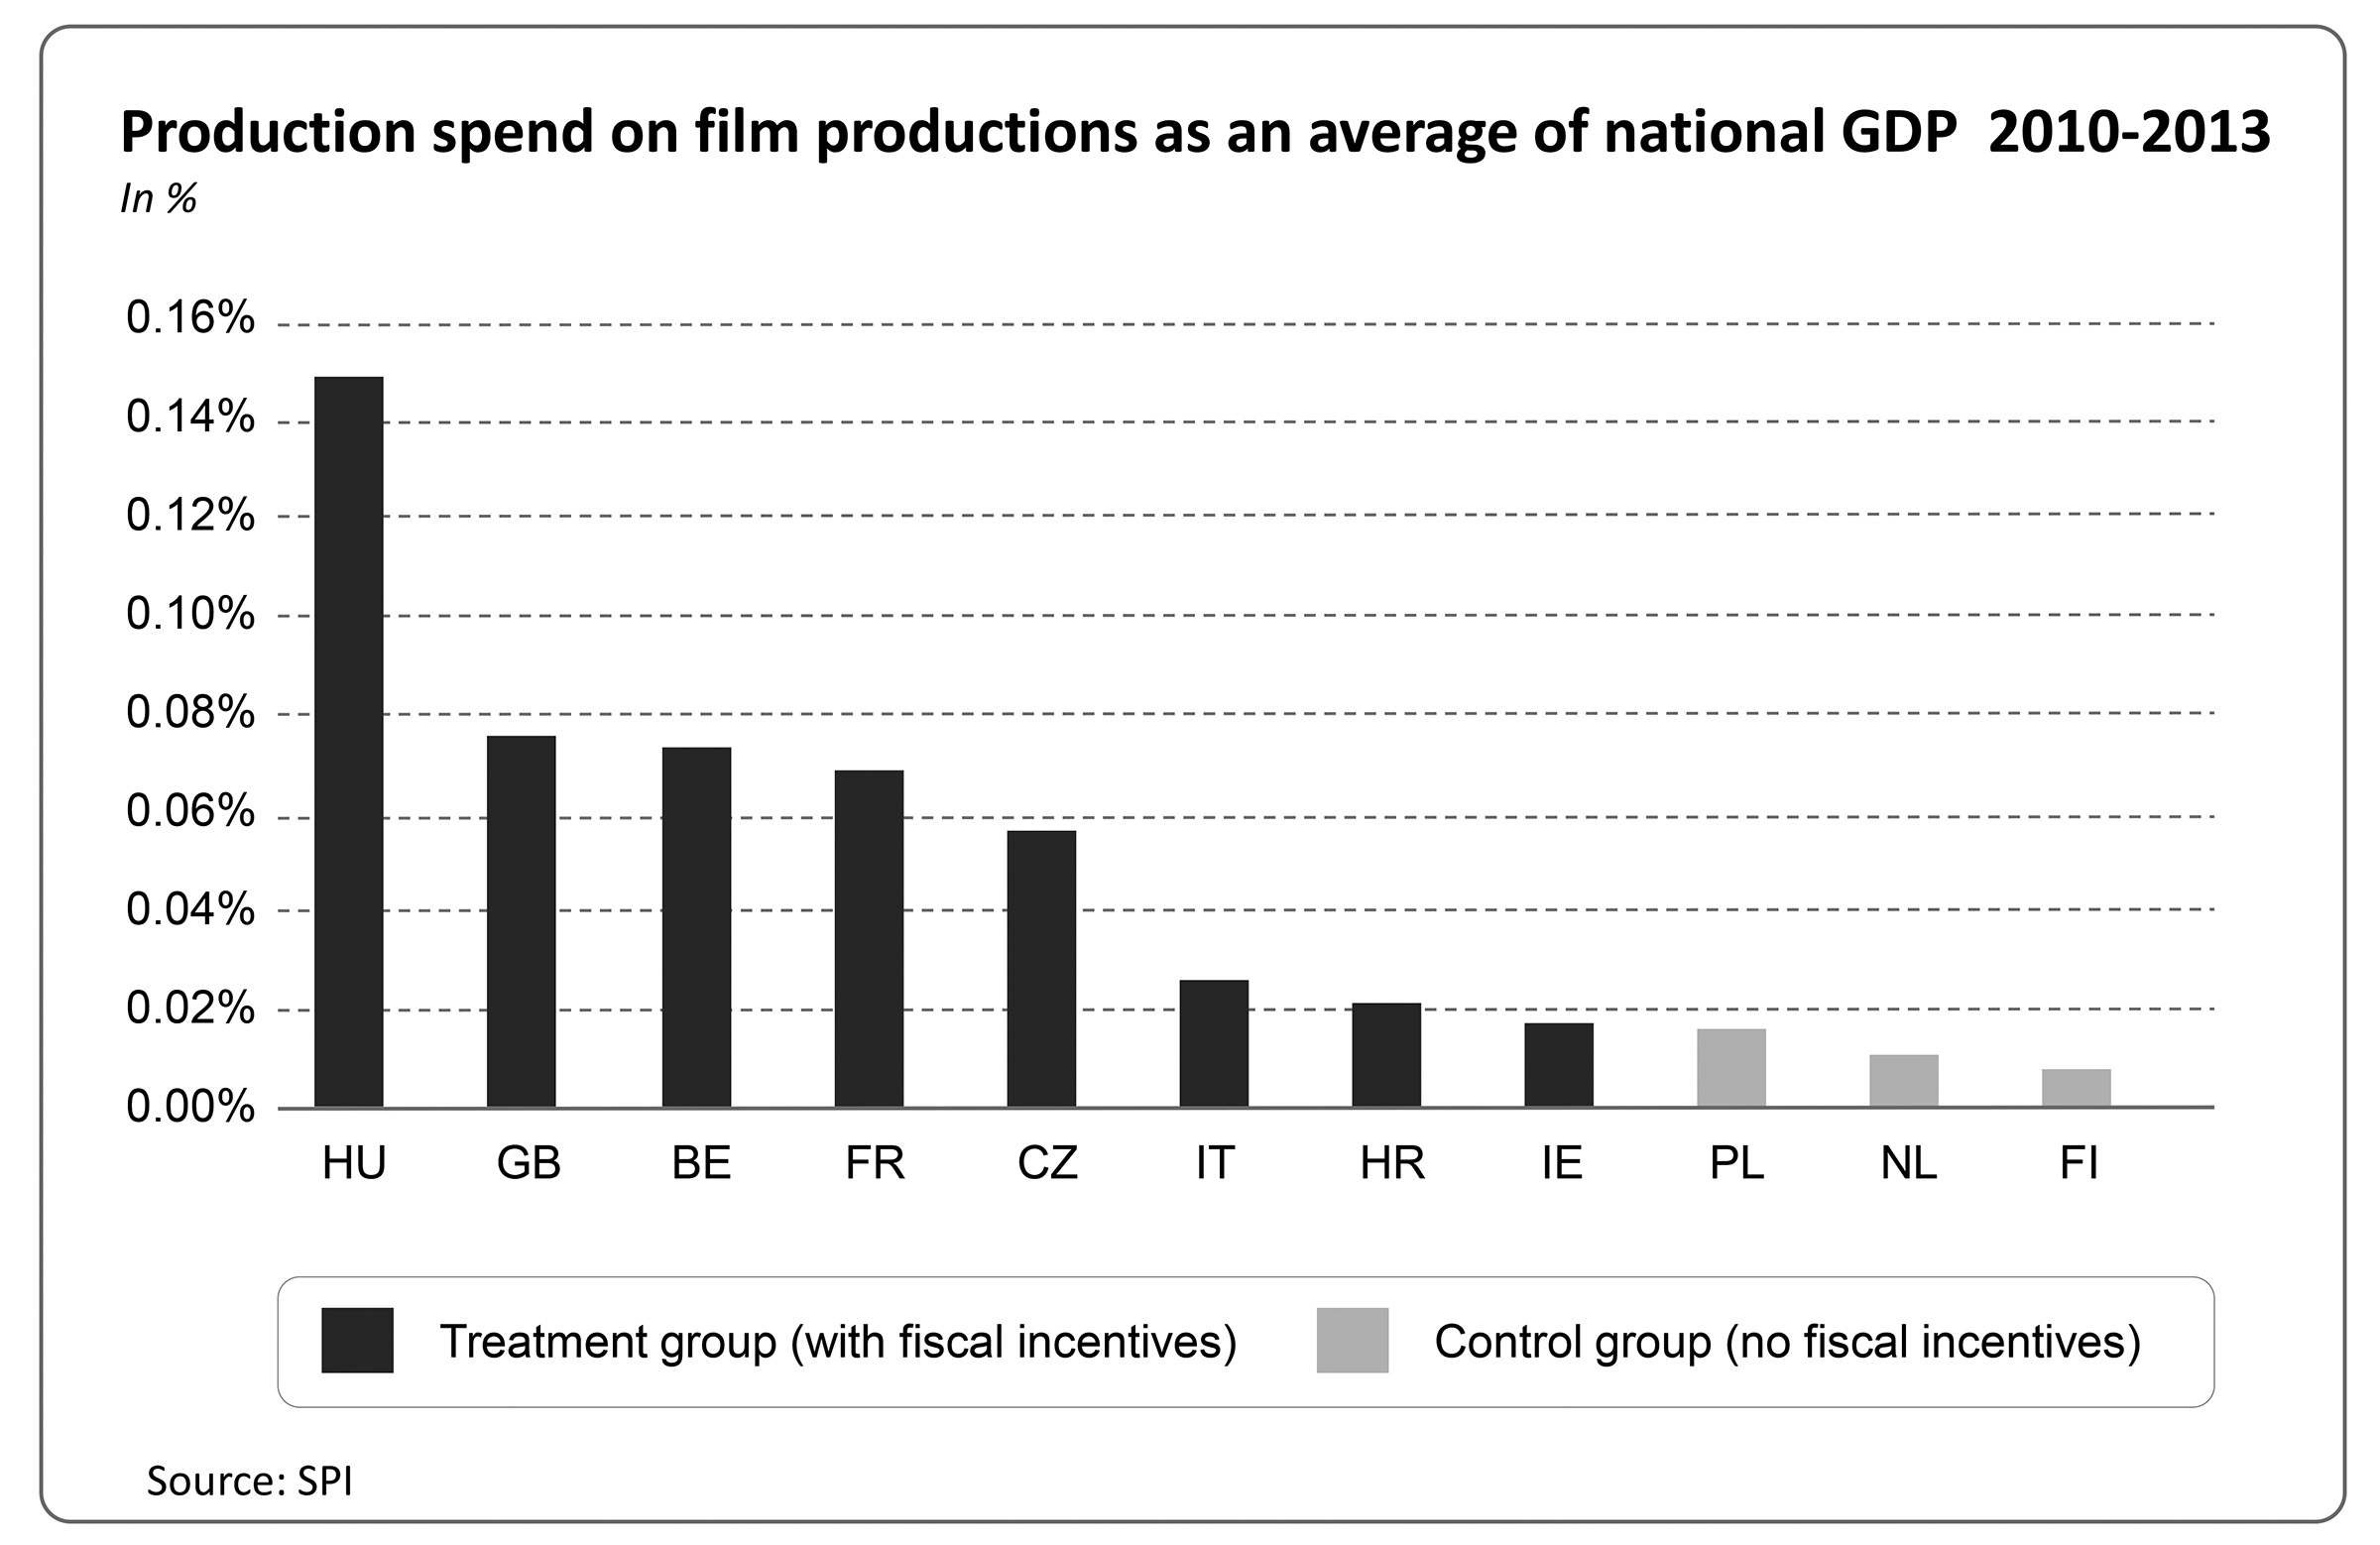 Production spend on film productions as an average of national GDP 2010-2013 in%